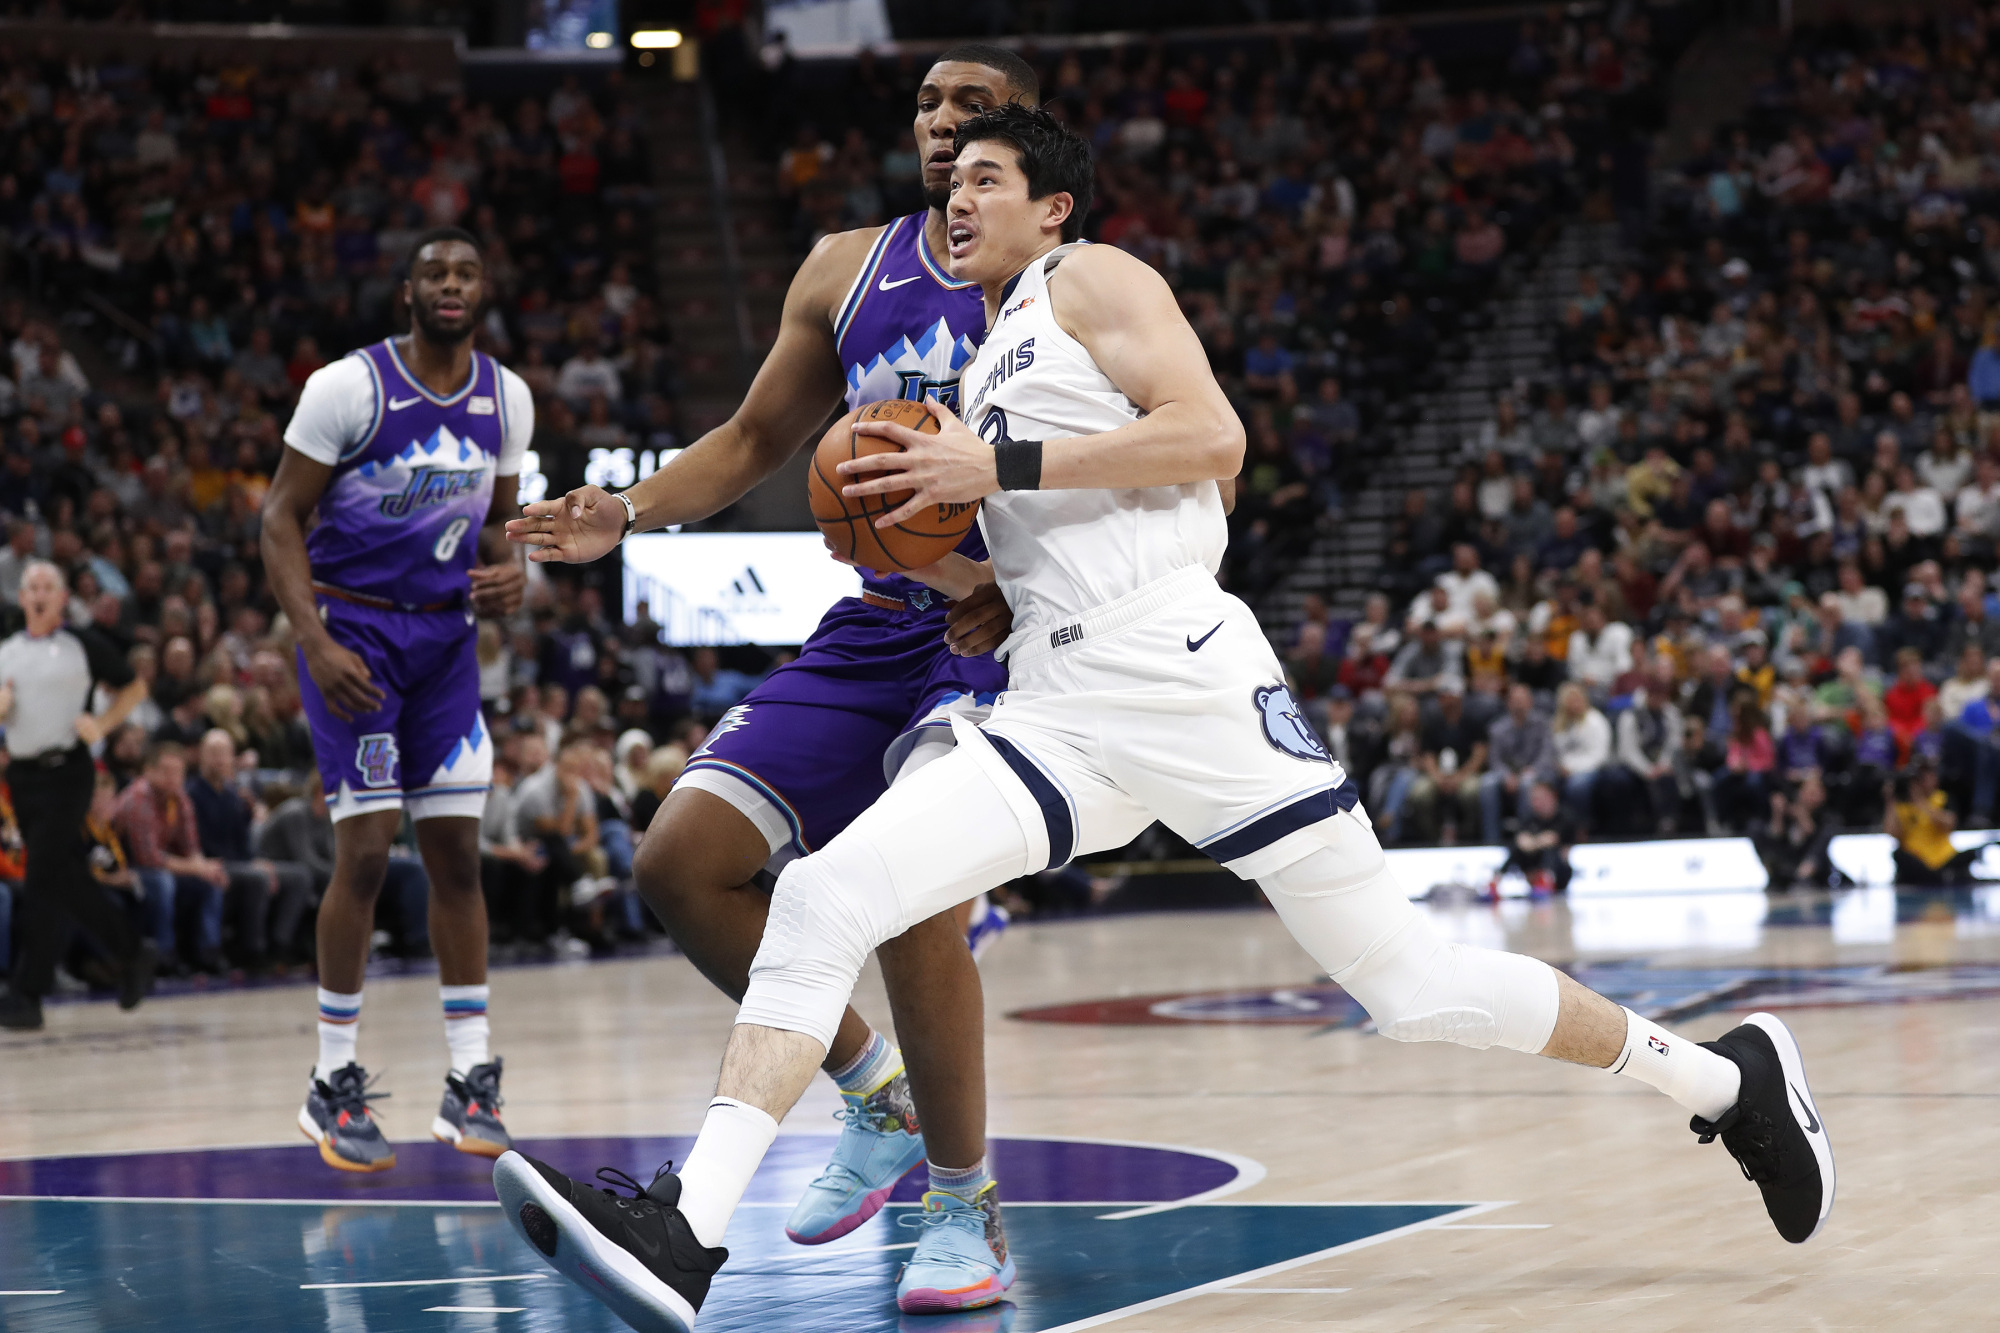 Memphis Grizzlies two-way player Yuta Watanabe, seen in action in a December file photo playing against the Utah Jazz, had 40 points in the Memphis Hustle's win over the Delaware Blue Coats on Wednesday.   USA TODAY / VIA REUTERS